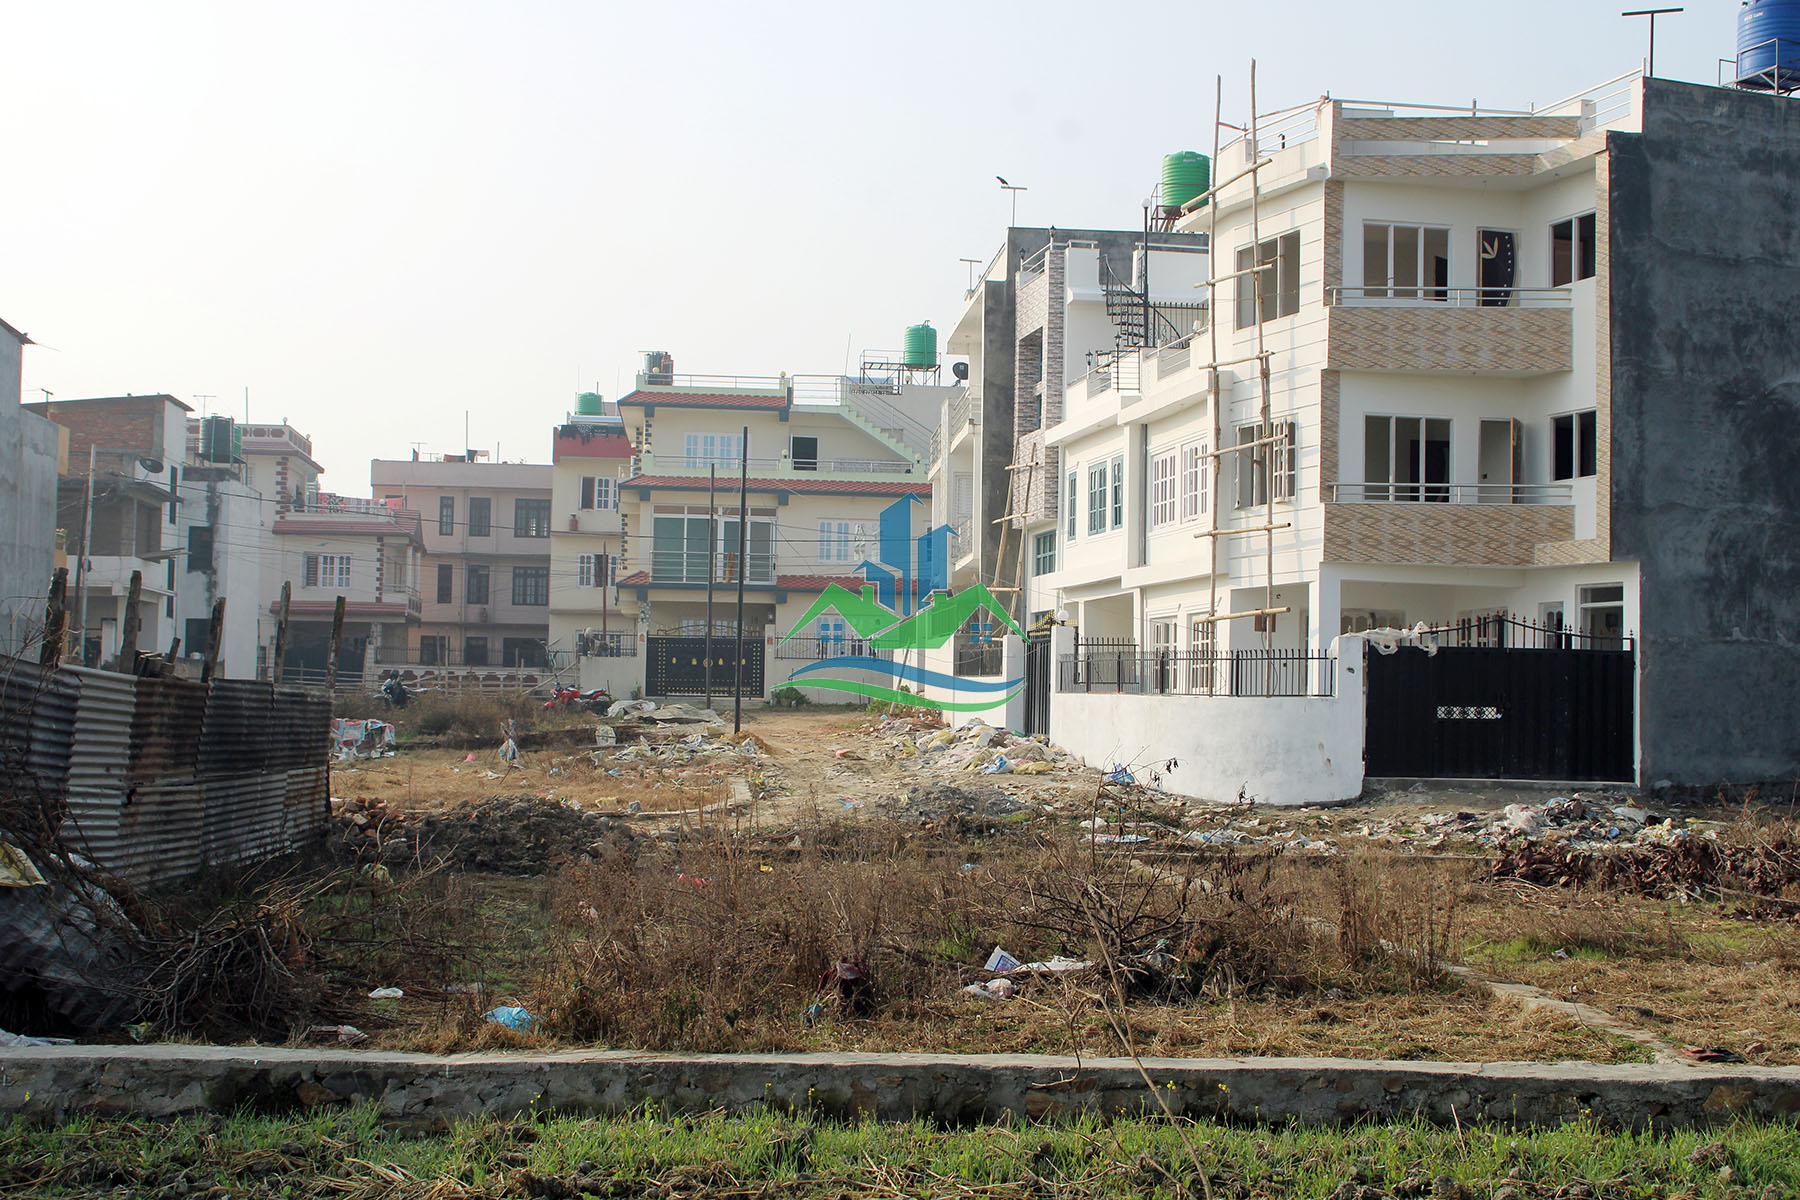 eProperty_nepal_(3).jpg